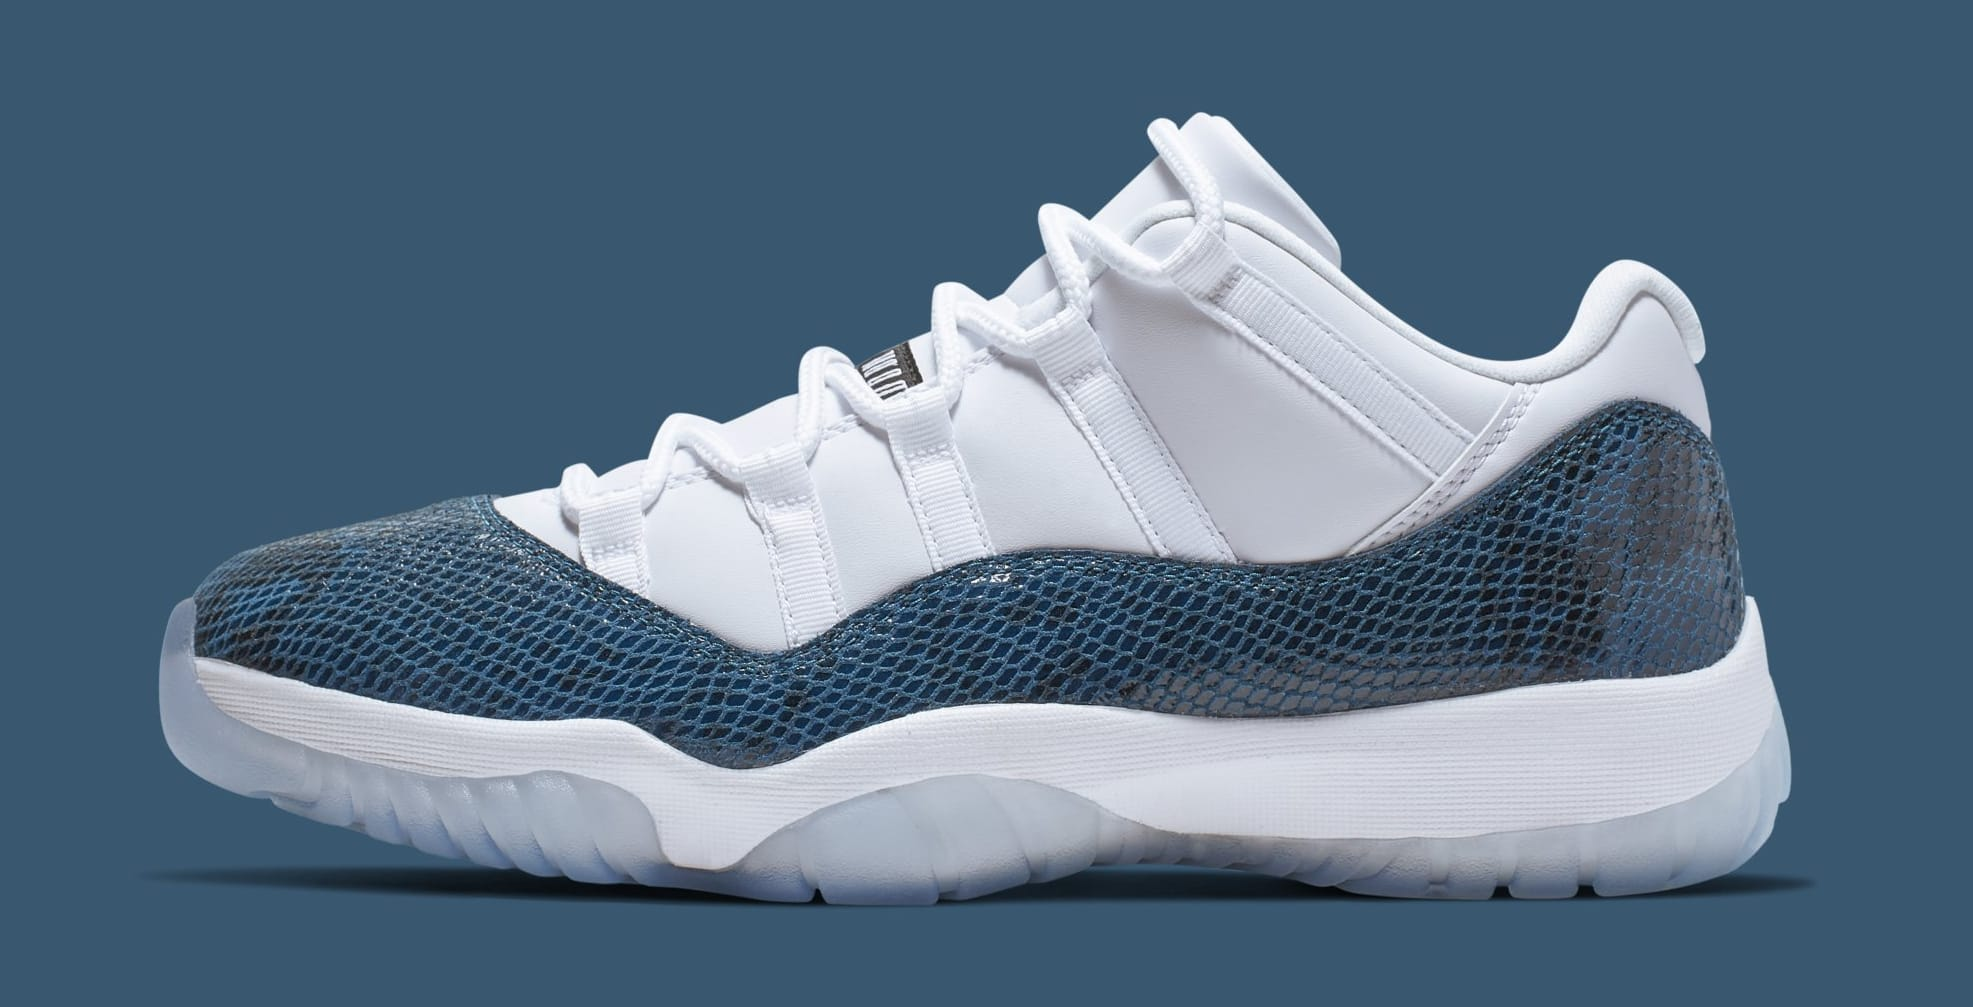 79f0a138d71 Air Jordan 11 Low 'Blue Snakeskin' Release Date CD6846-102 | Sole ...